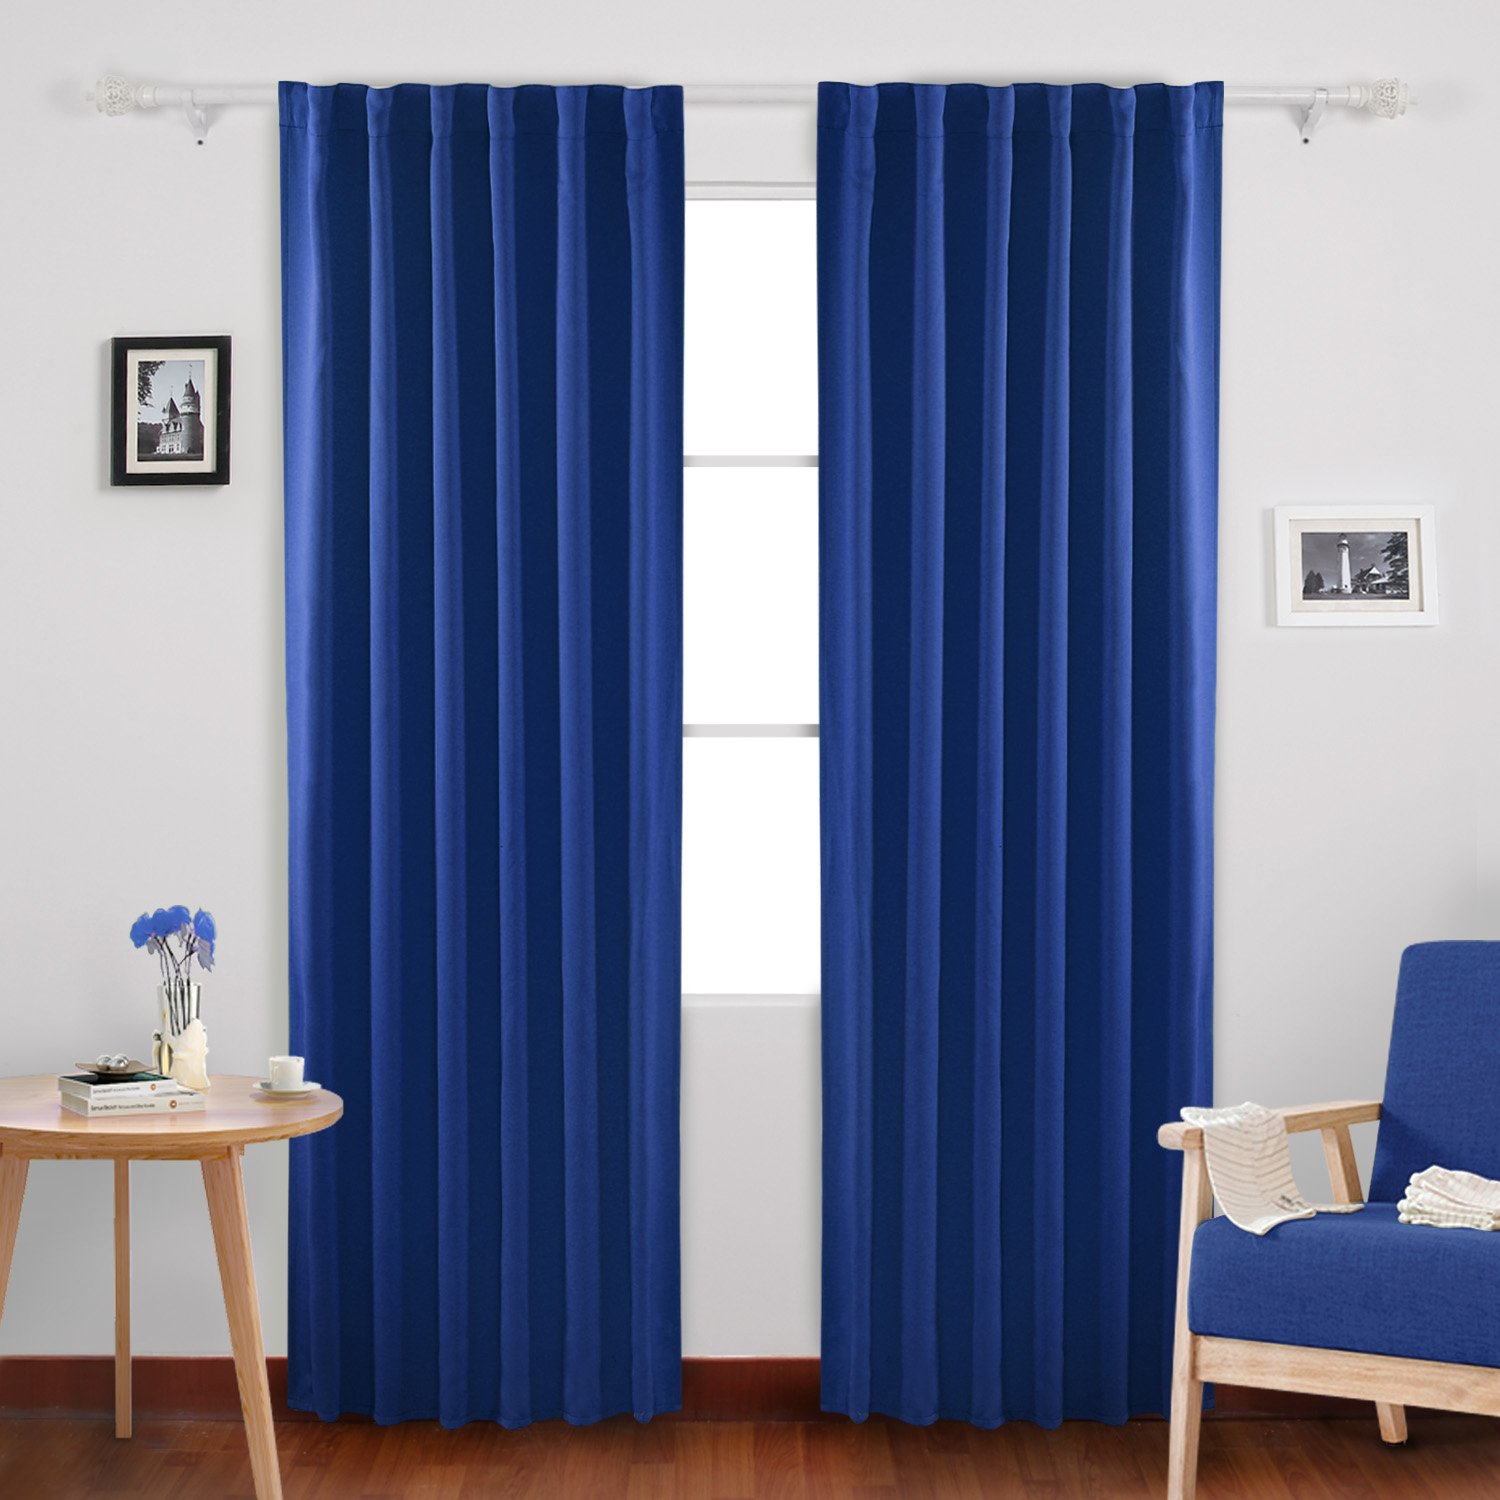 36 Inch Room Darkening Curtains Cheap Rod Pocket Blackout Curtains Find Rod Pocket Blackout